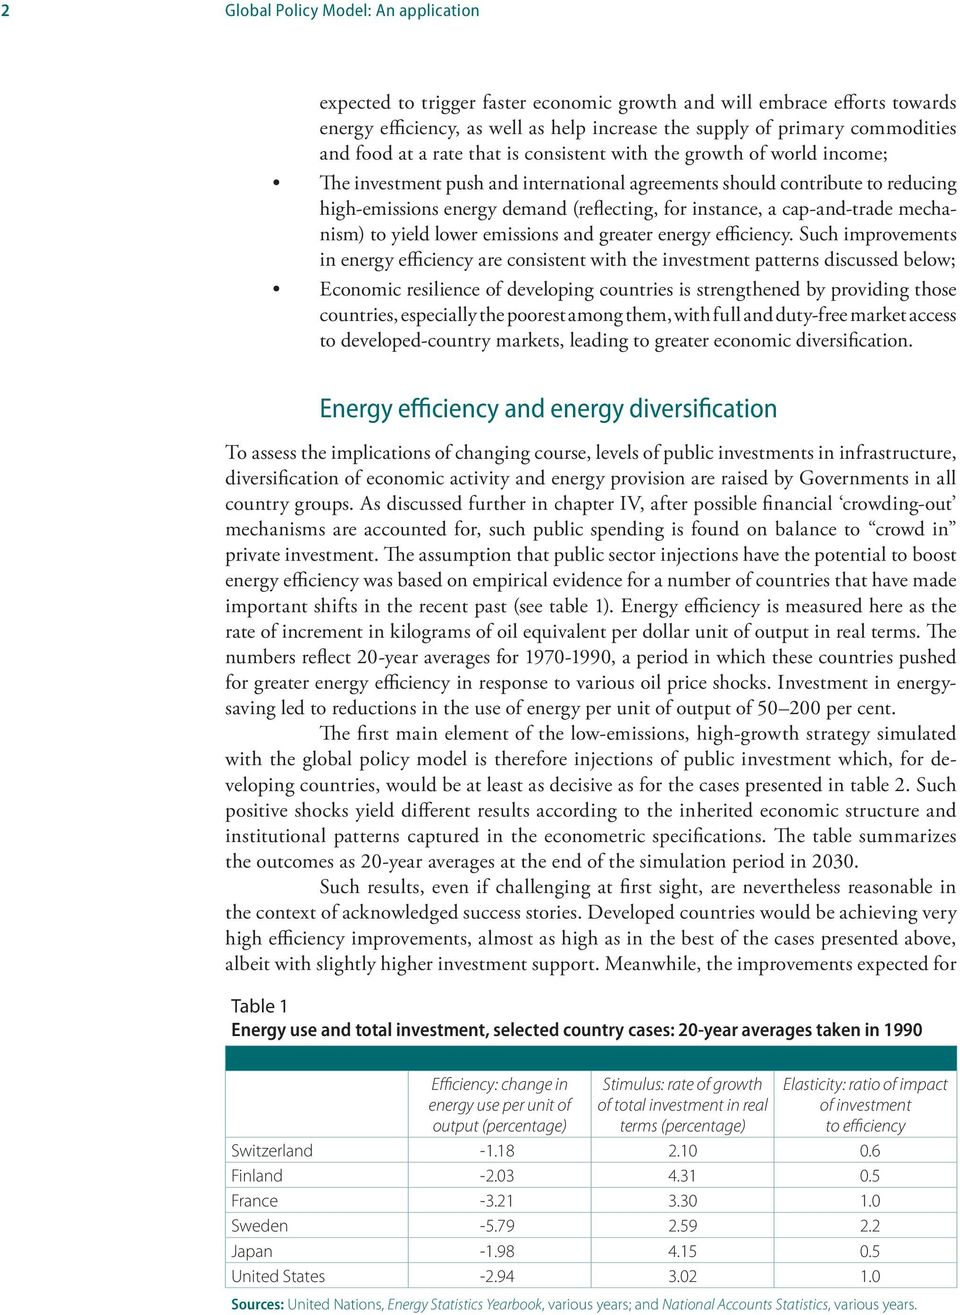 cap-and-trade mechanism) to yield lower emissions and greater energy efficiency.